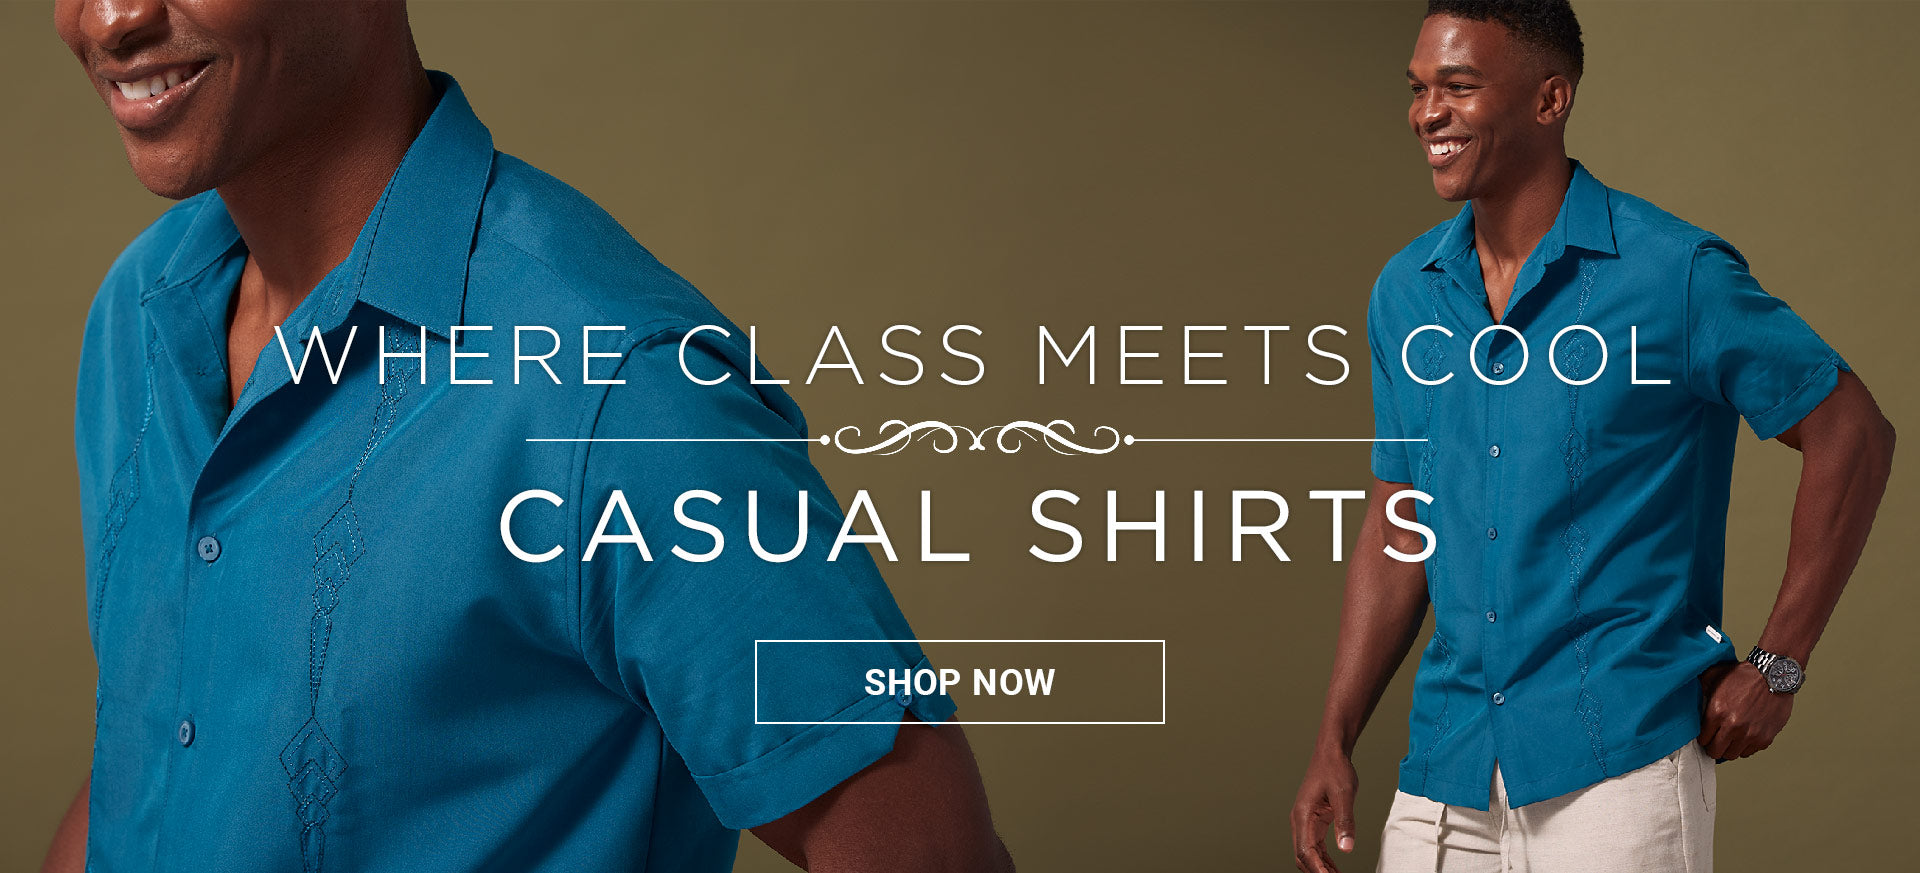 WHERE CLASS MEETS COOL - Shop Now